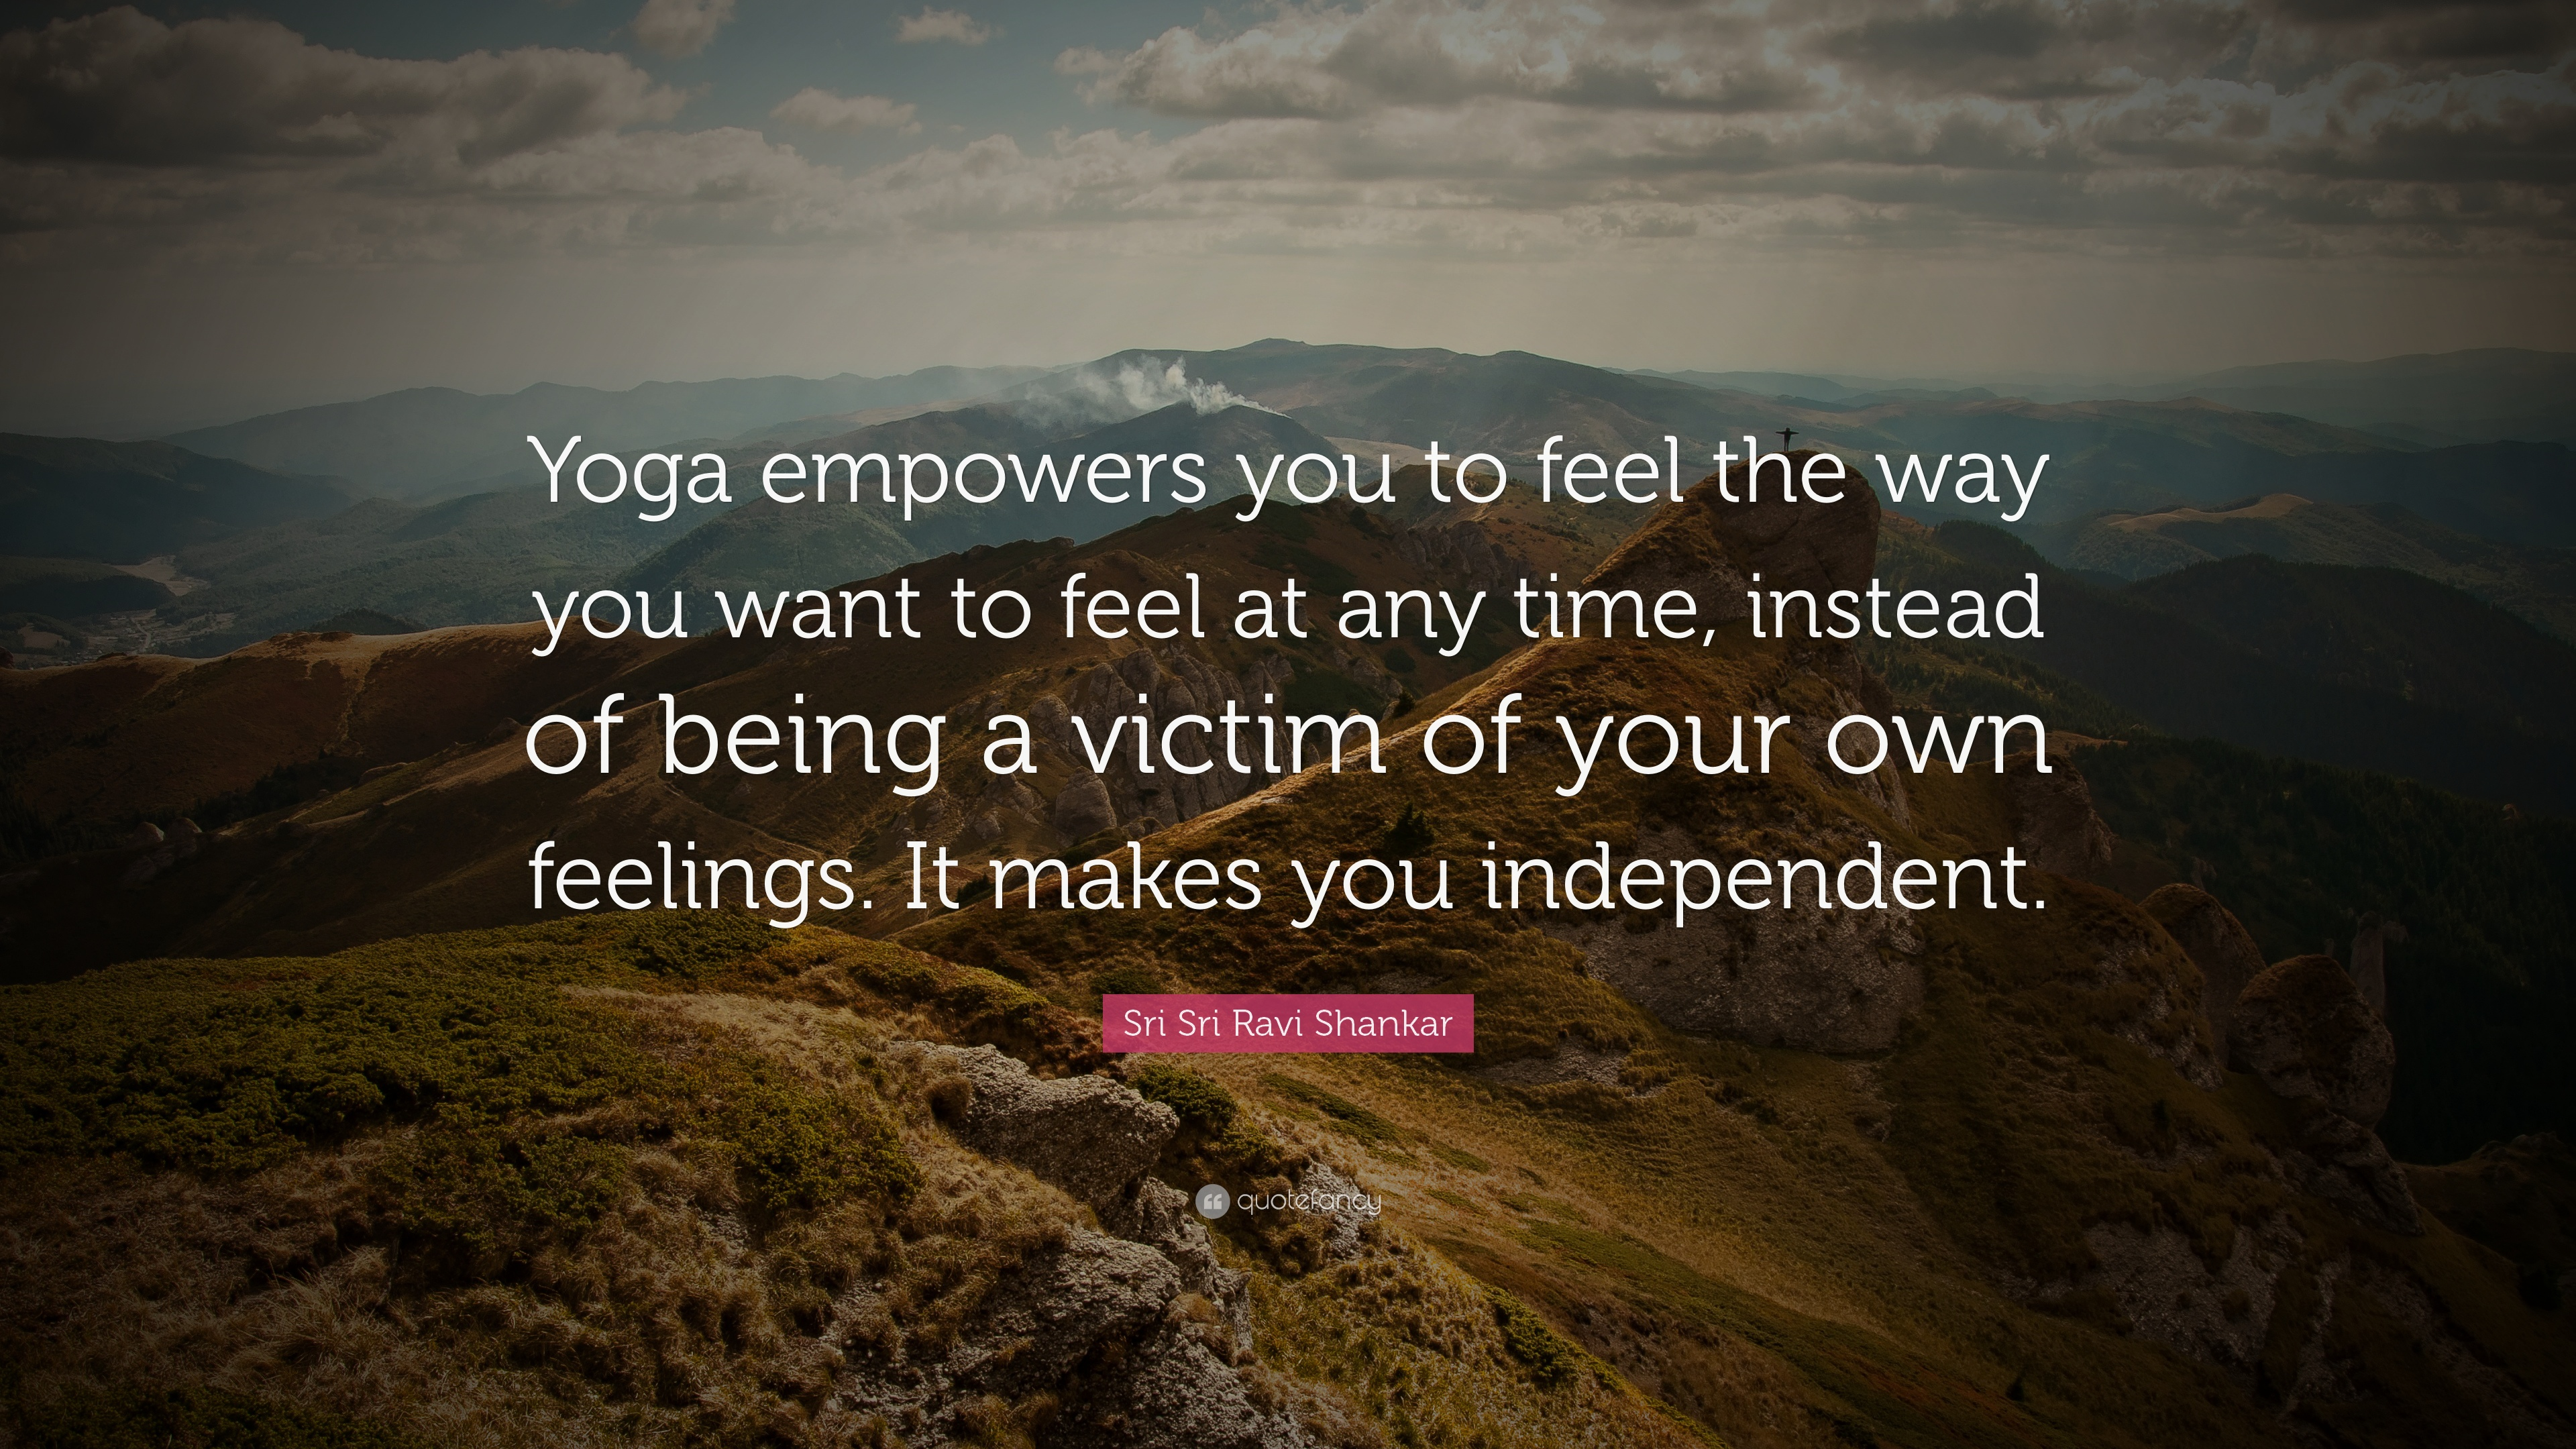 Sri Ravi Shankar Quote Yoga Empowers You To Feel The Way Want